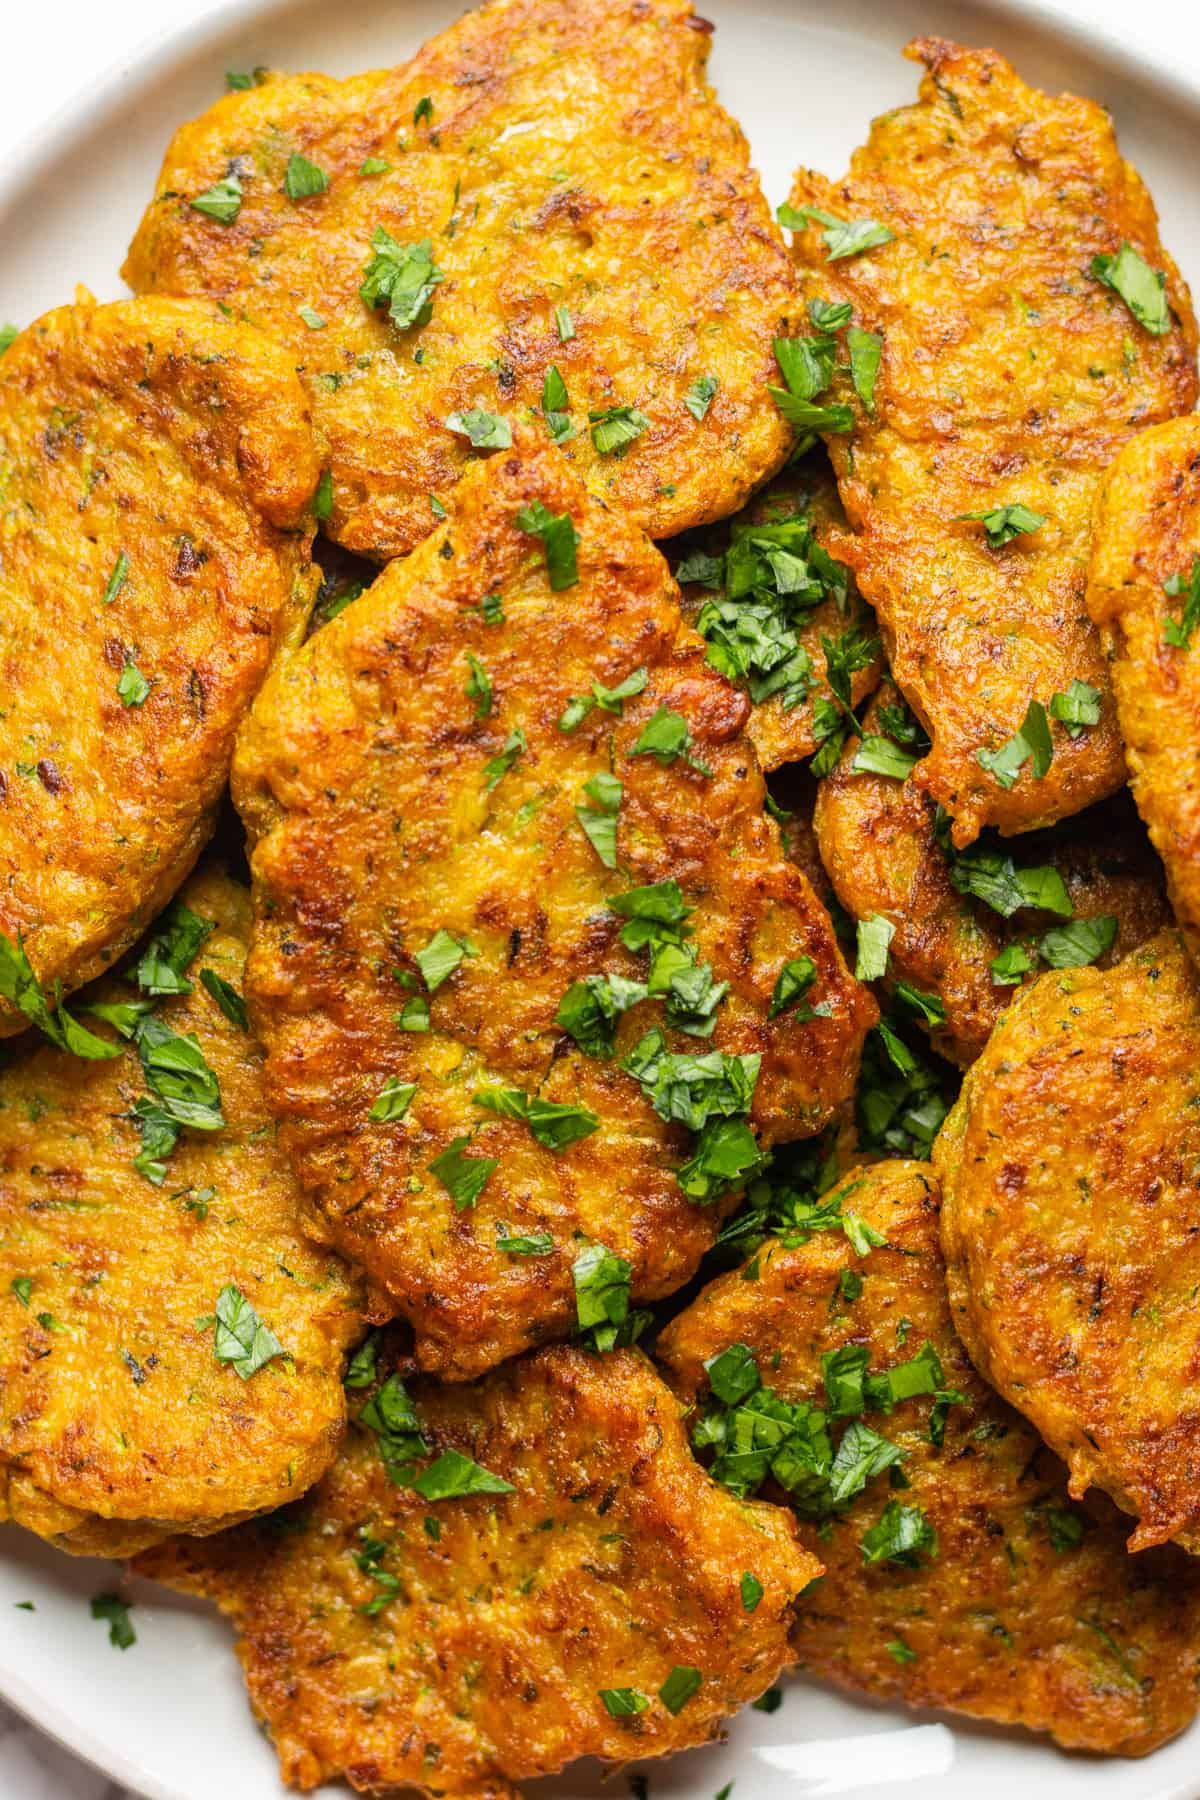 Pumpkin fritters on a white plate sprinkled with parsley